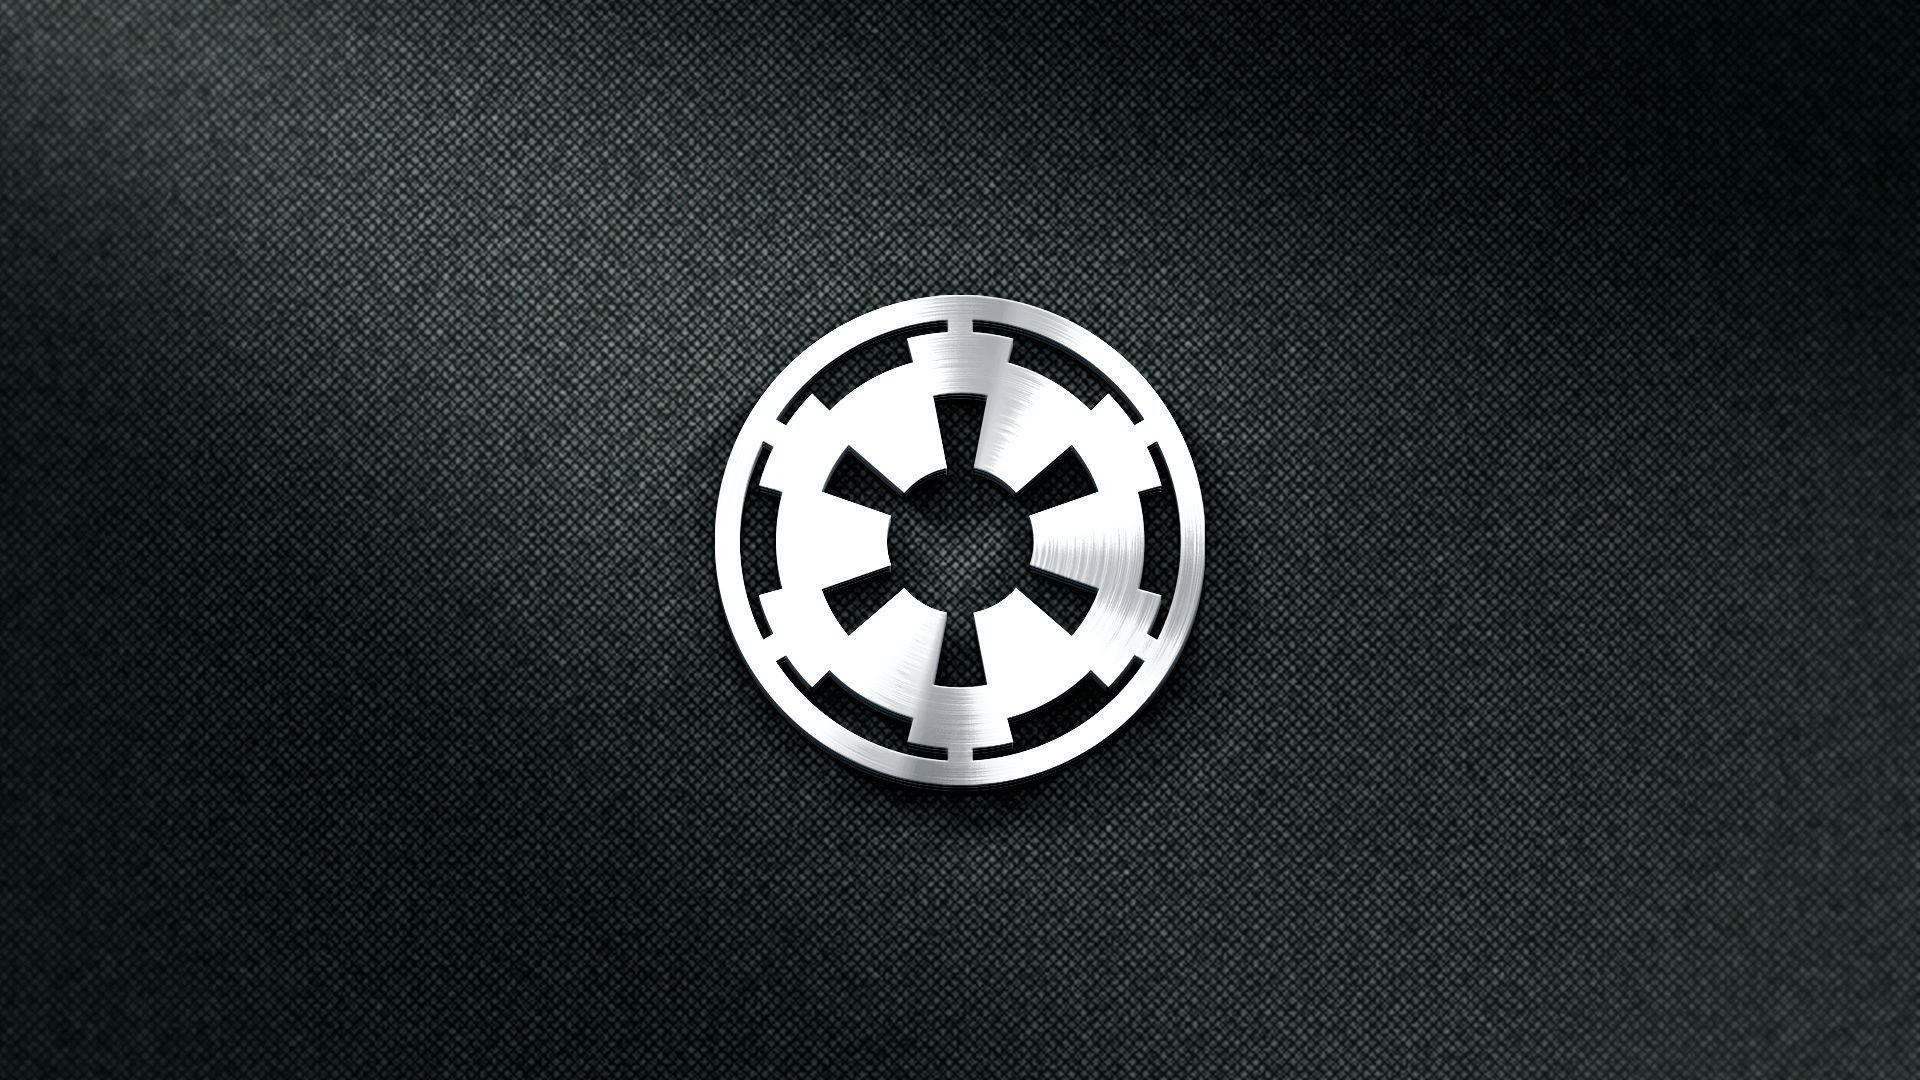 Res: 1920x1080, Star Wars Empire Wallpaper High Definition